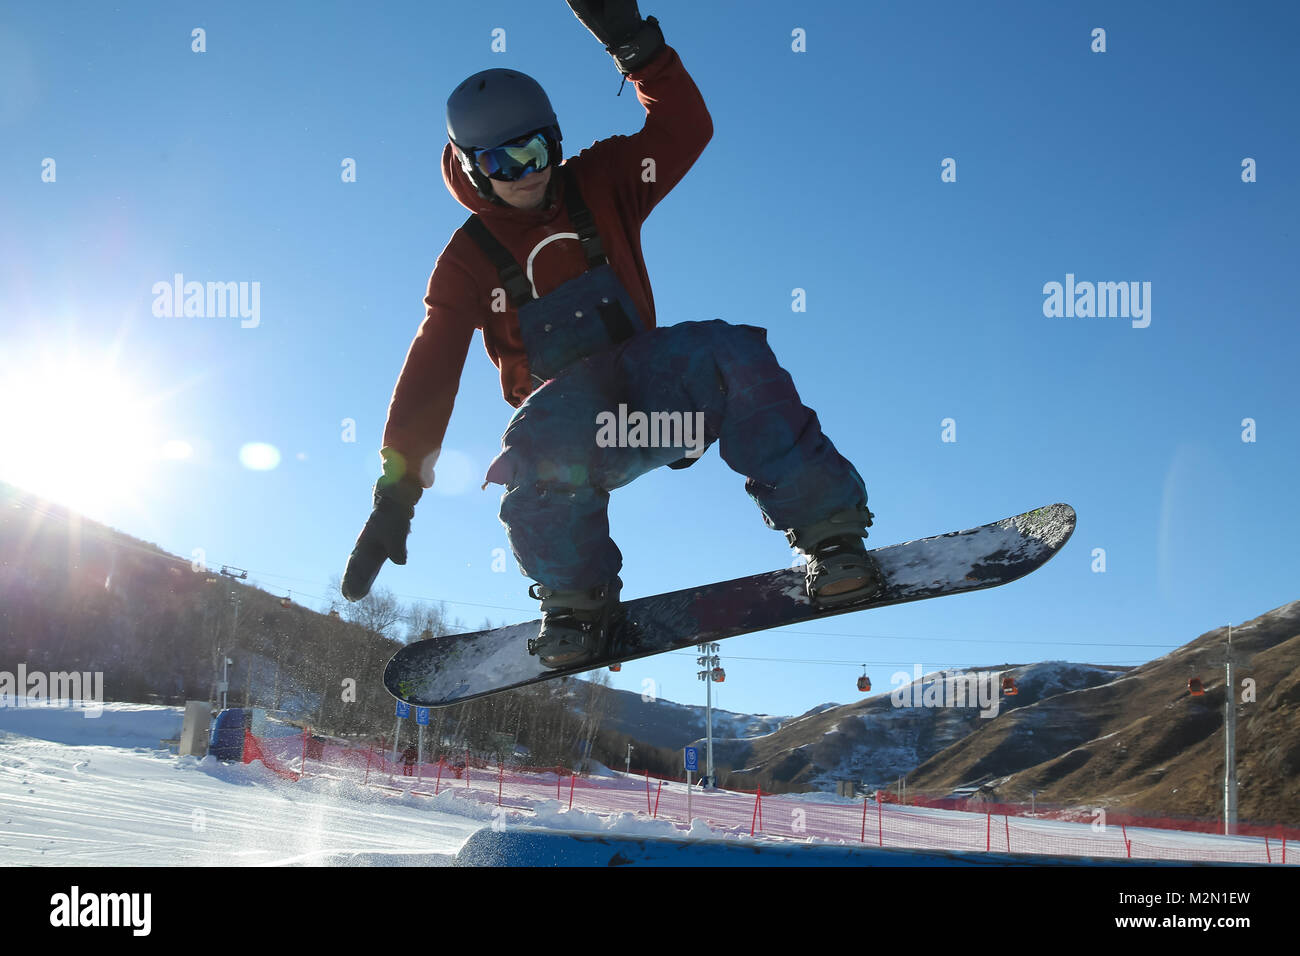 Young men outdoor skiing - Stock Image